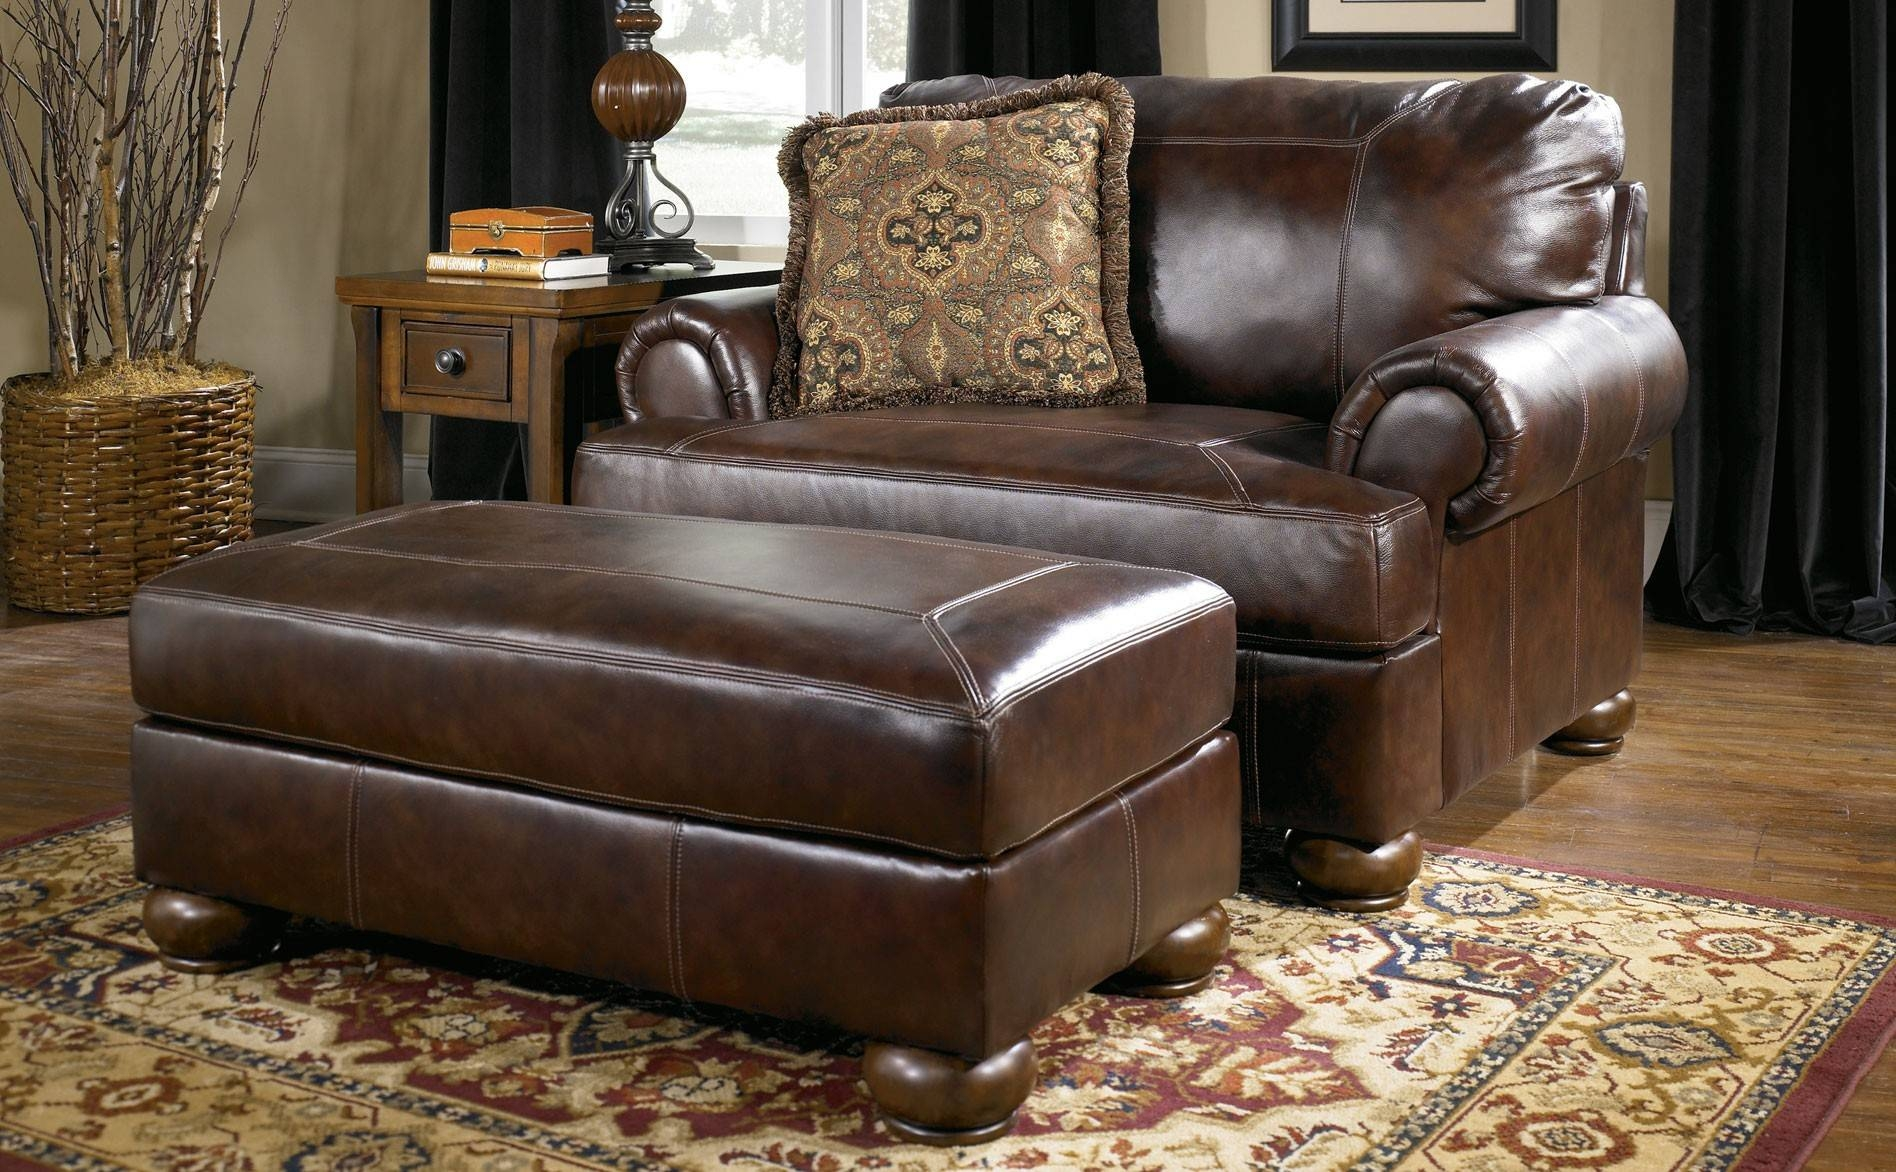 Chair Oversized Chair And Ottoman Designs Half With A Recliner intended for Sofa Chair With Ottoman (Image 9 of 30)